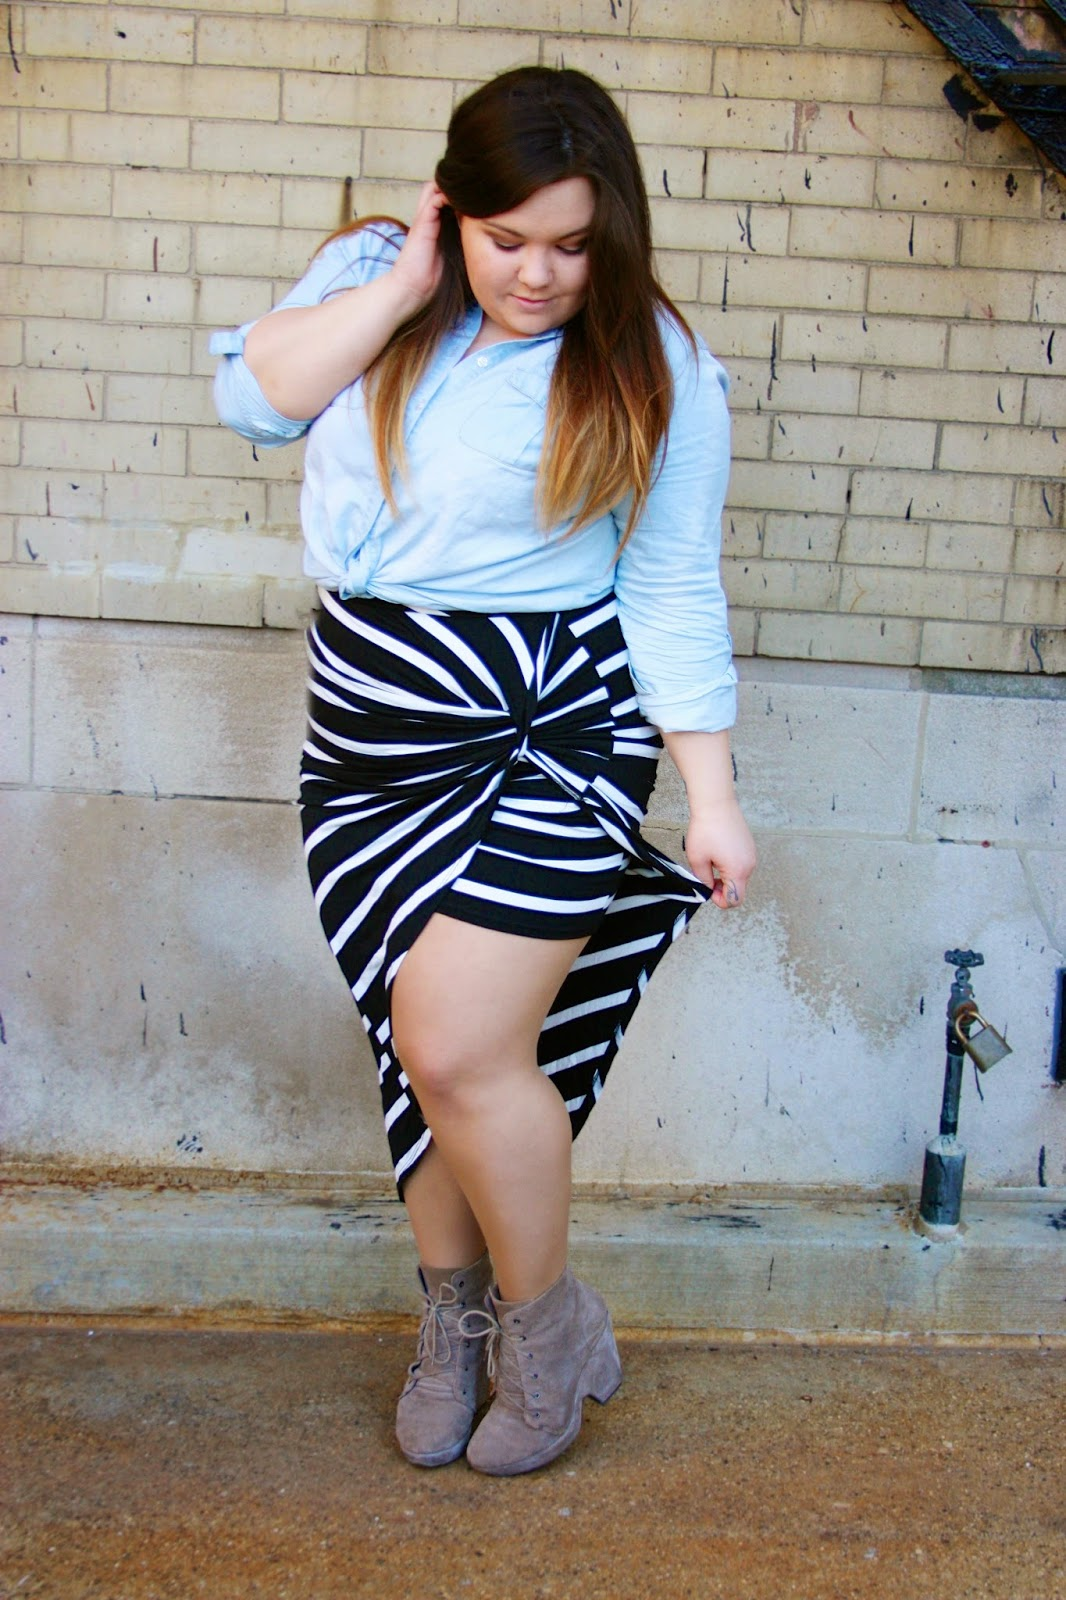 Charlotte Russe, Charlotte Russe plus size clothing line, maxi skirt, asymmetrical maxi, ankle boots, plus size clothing line, natalie craig, natalie in the city, denim button up, chicago, plus size, plus size fashion blogger, heart your selfie, curvy fashionista, fatshion, bbw, unique maxi skirts